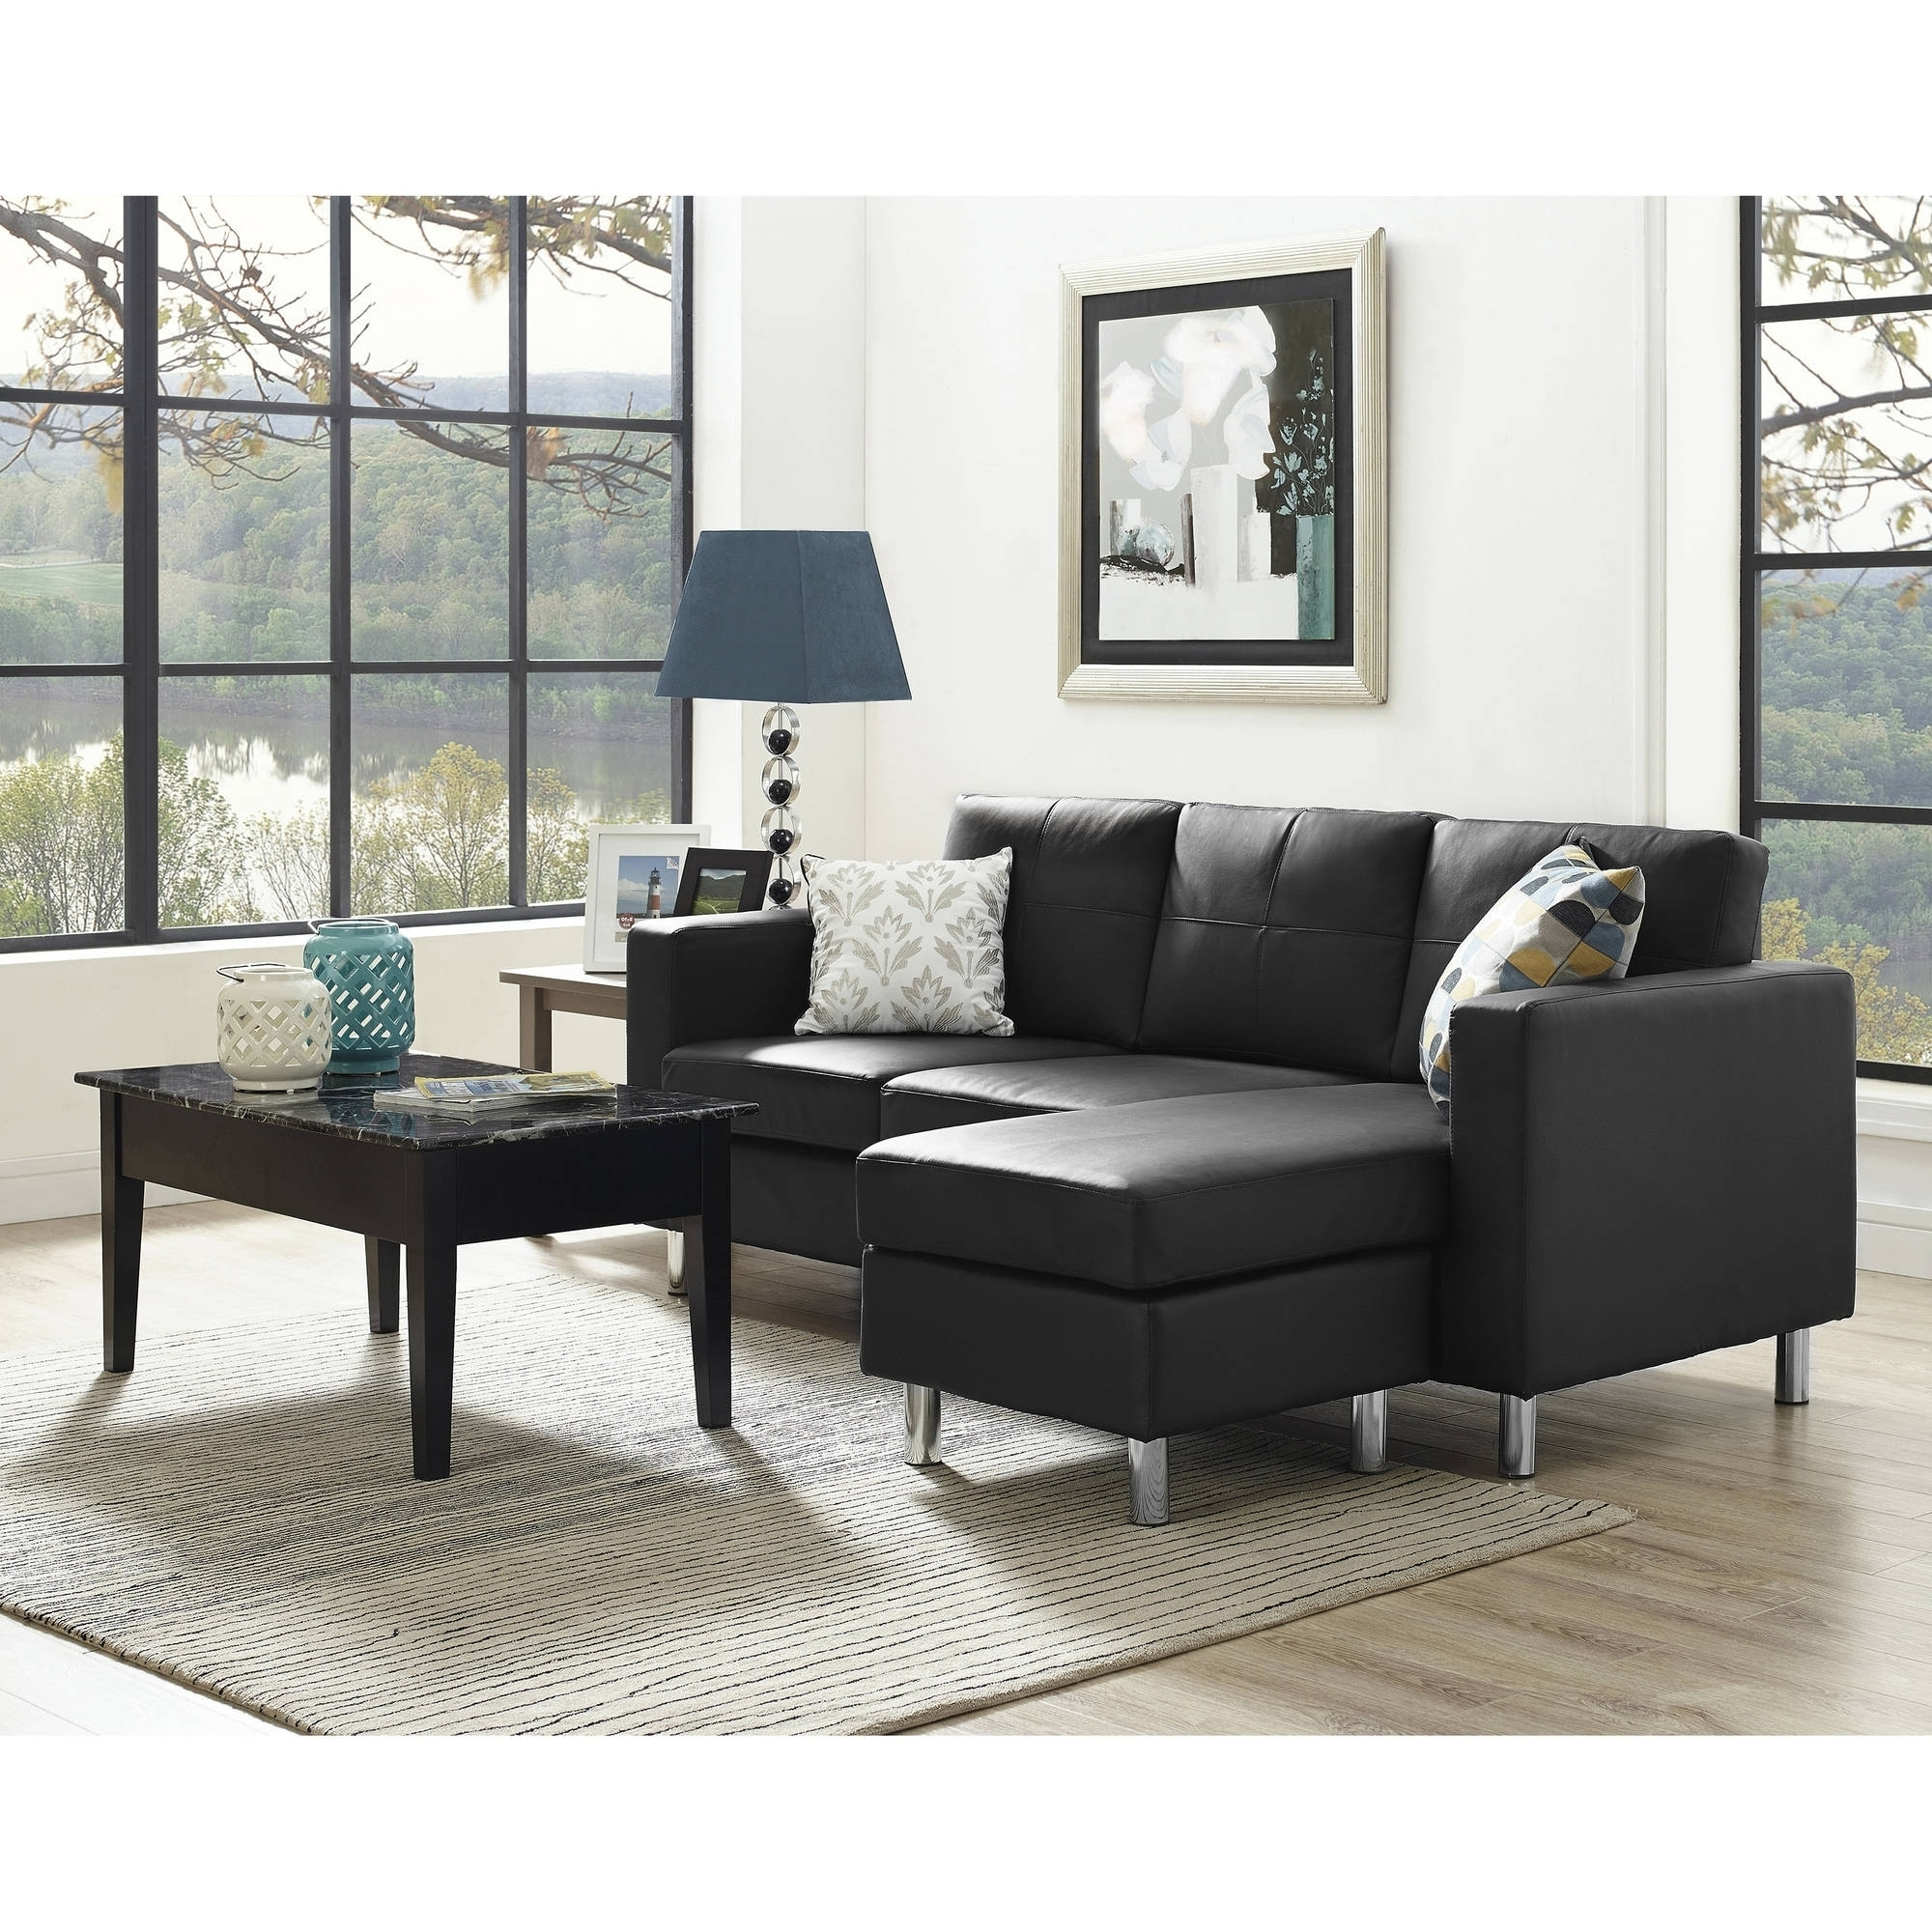 Most Up To Date Edge Small Sectional Sofas For Spaces Sofa Dorel Living The (View 5 of 15)